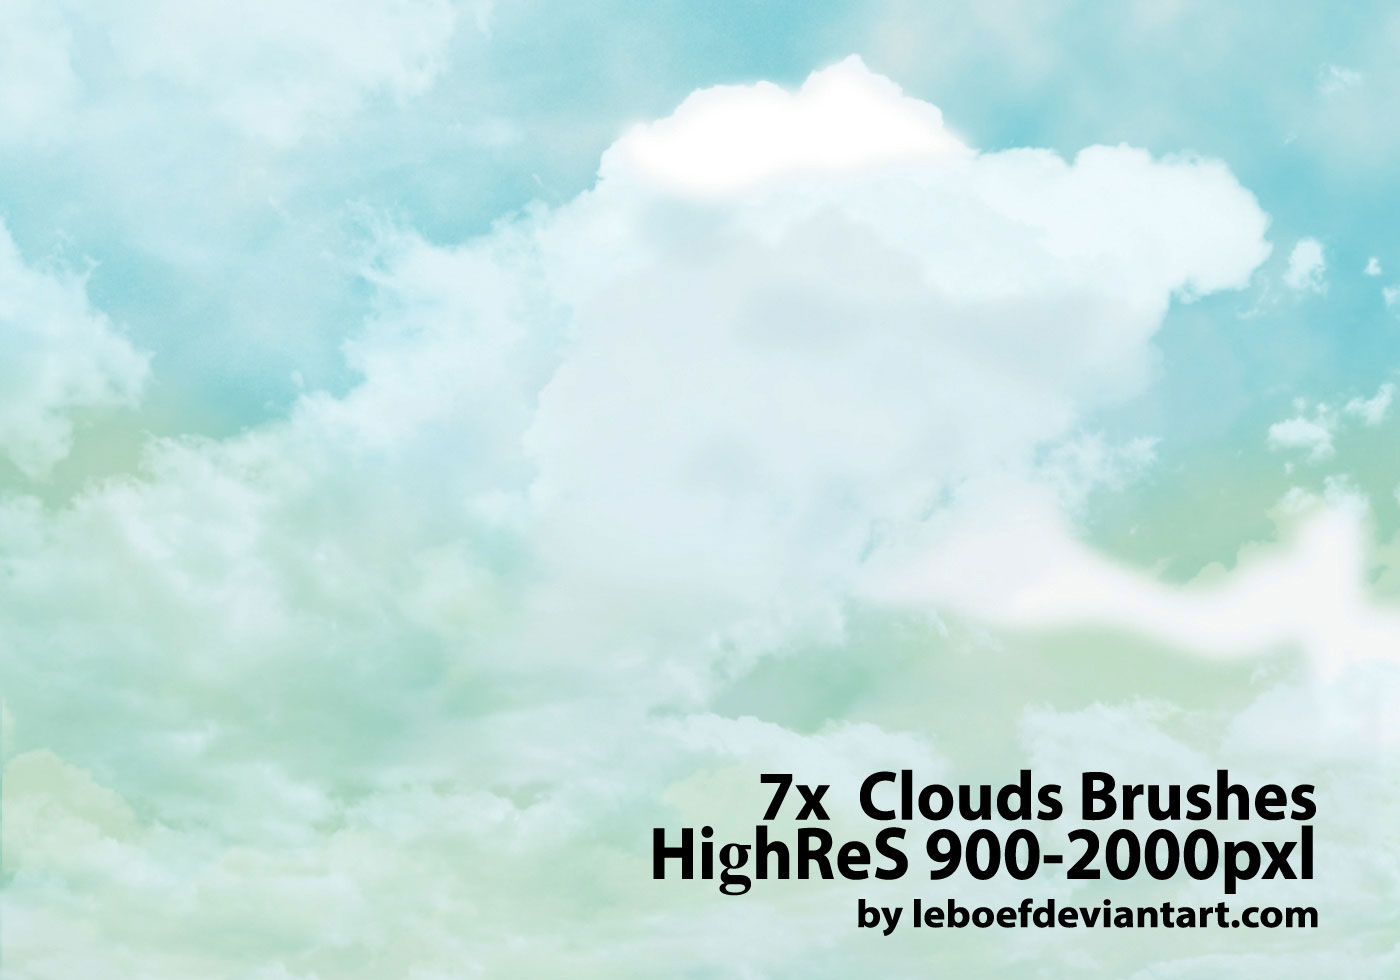 Clouds brushes photoshop free download